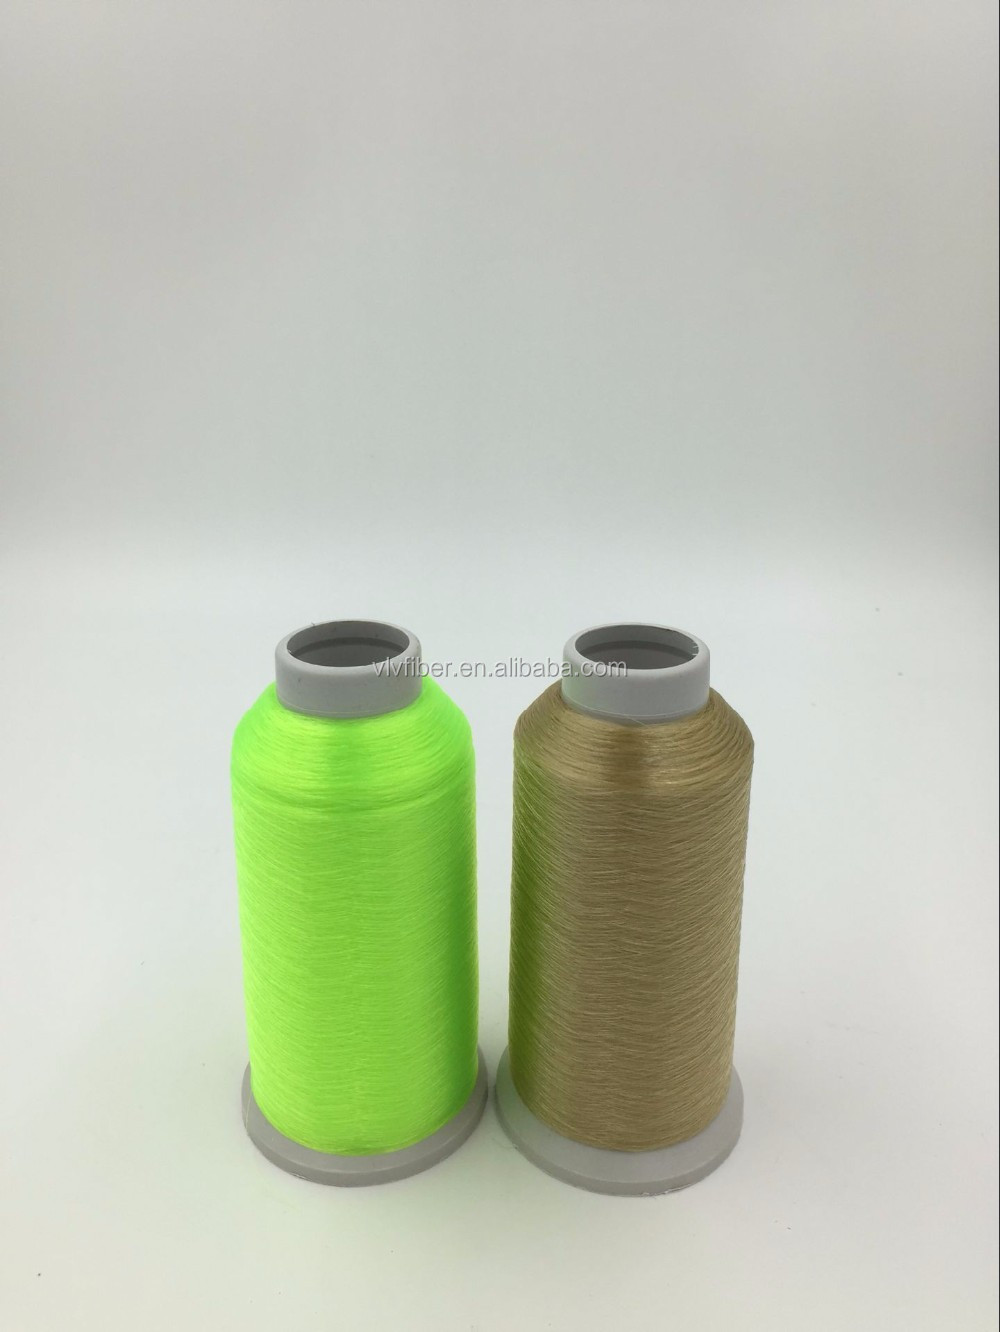 115D monofilament yarn polyamide for lace